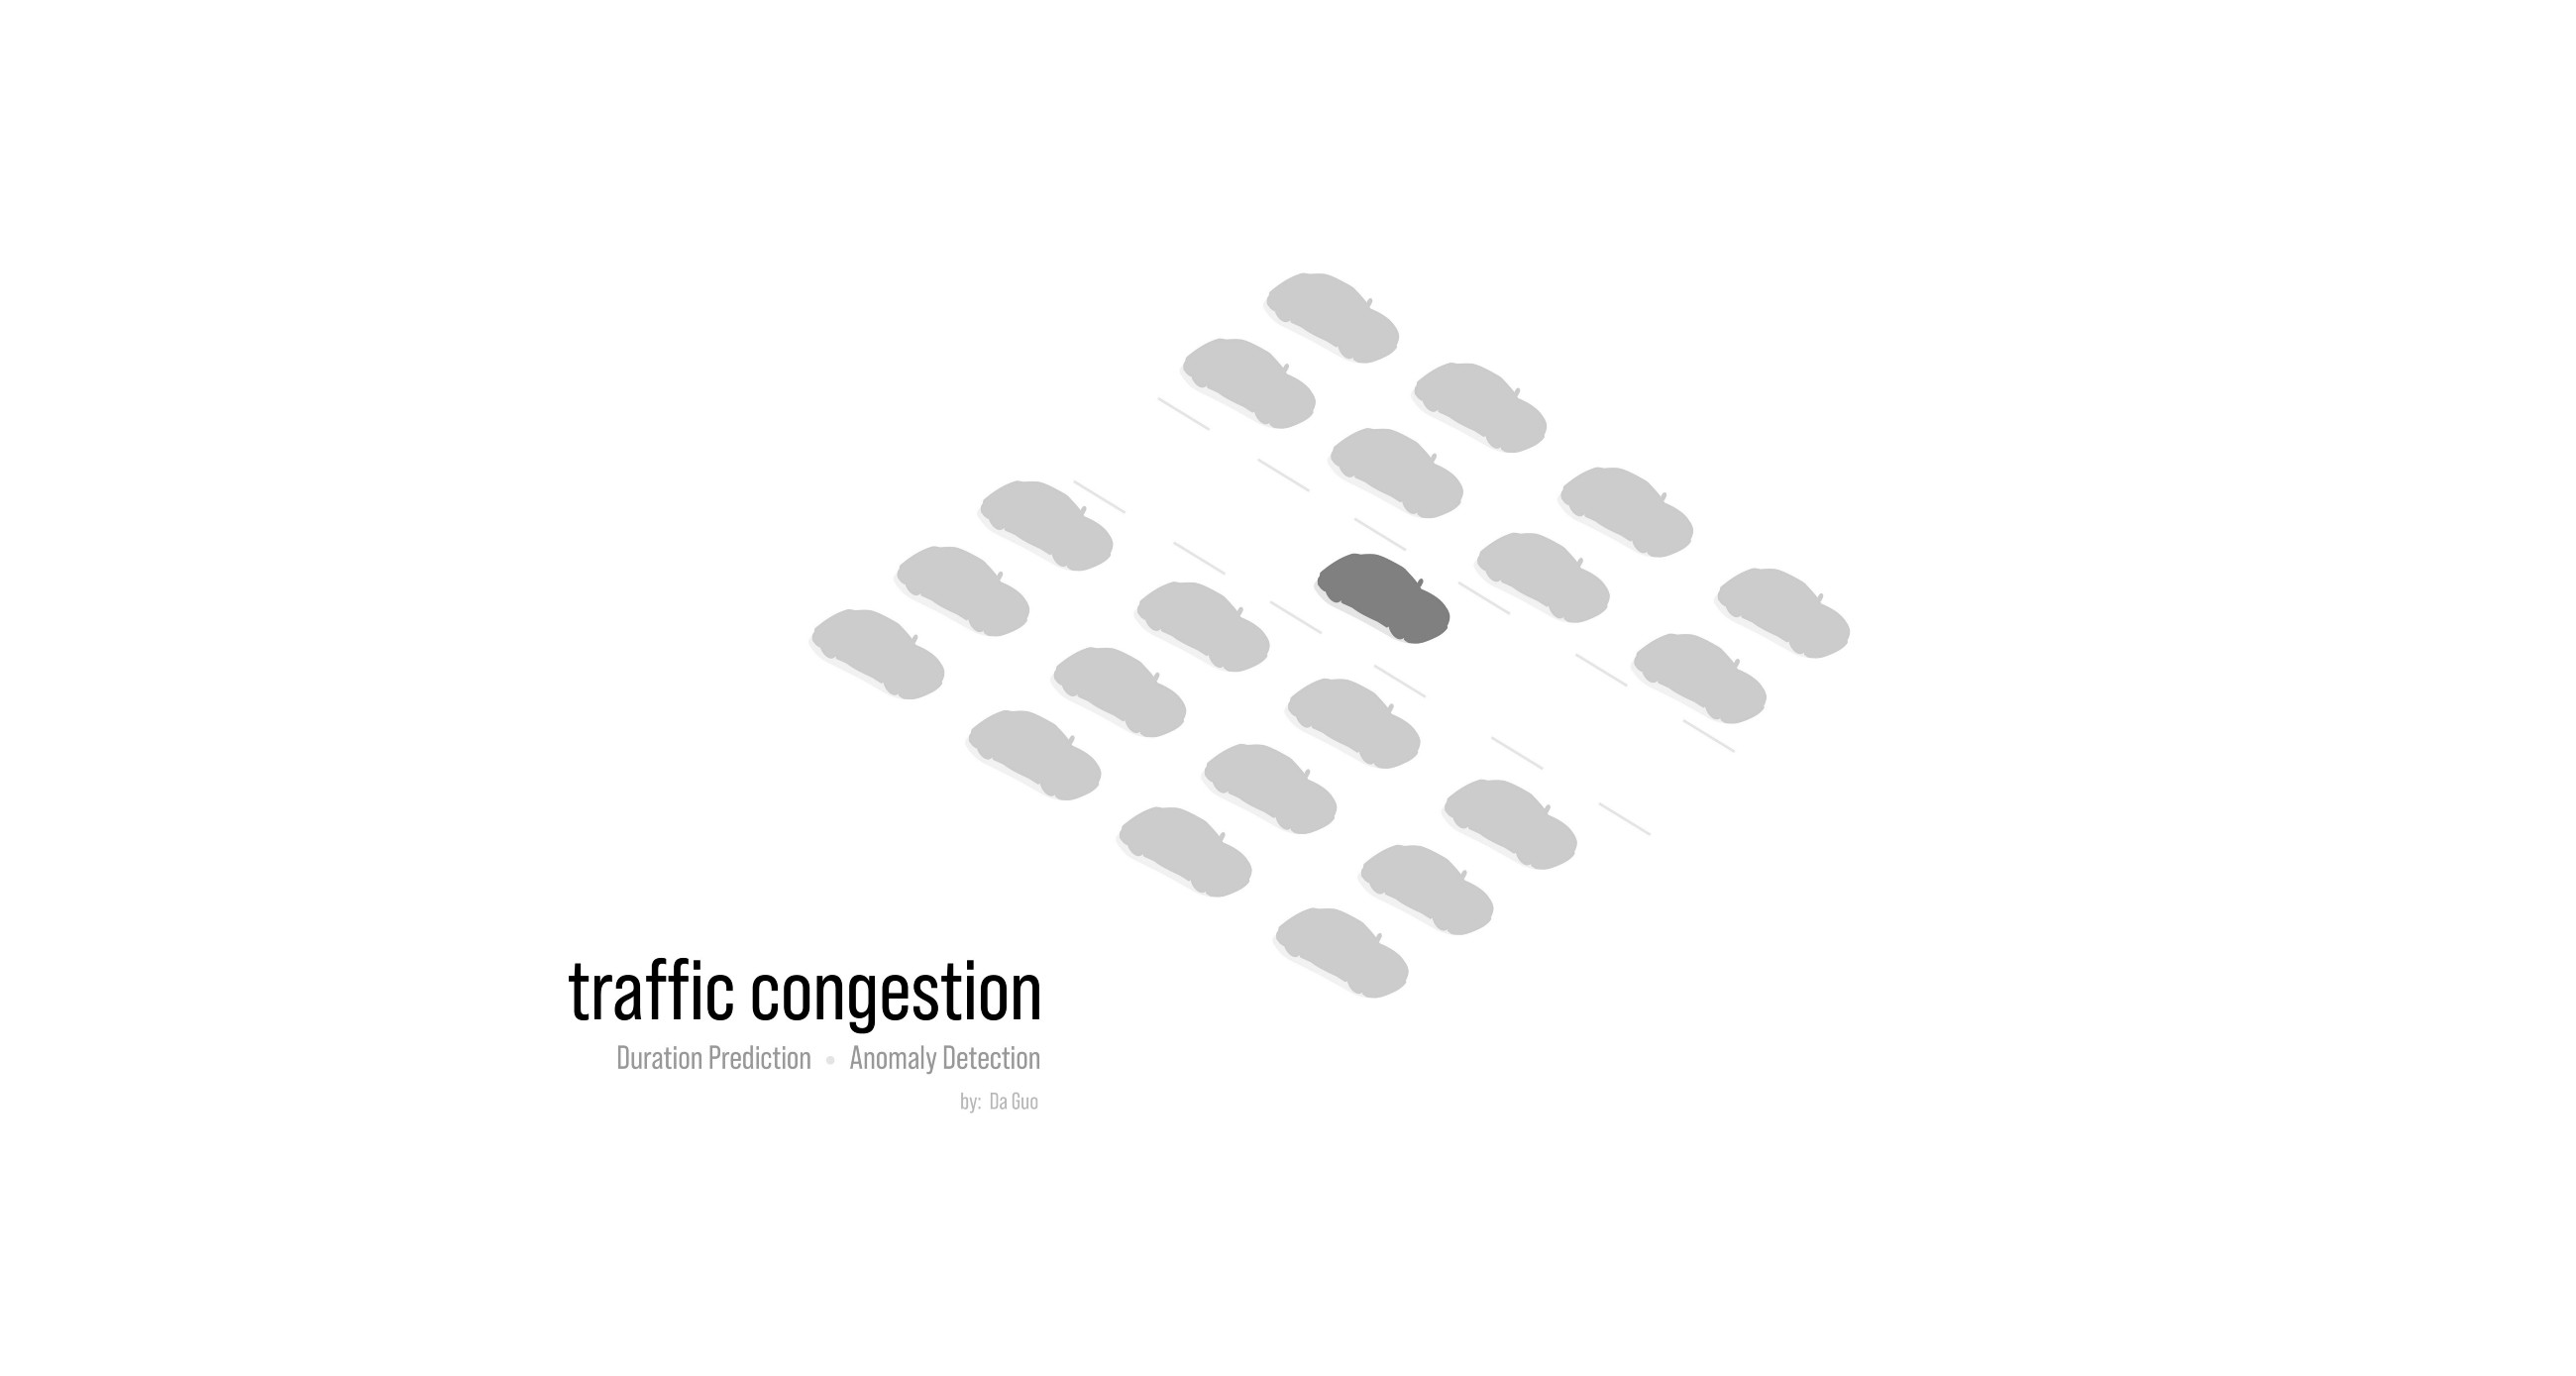 Predicting and Detecting Traffic Congestion Duration